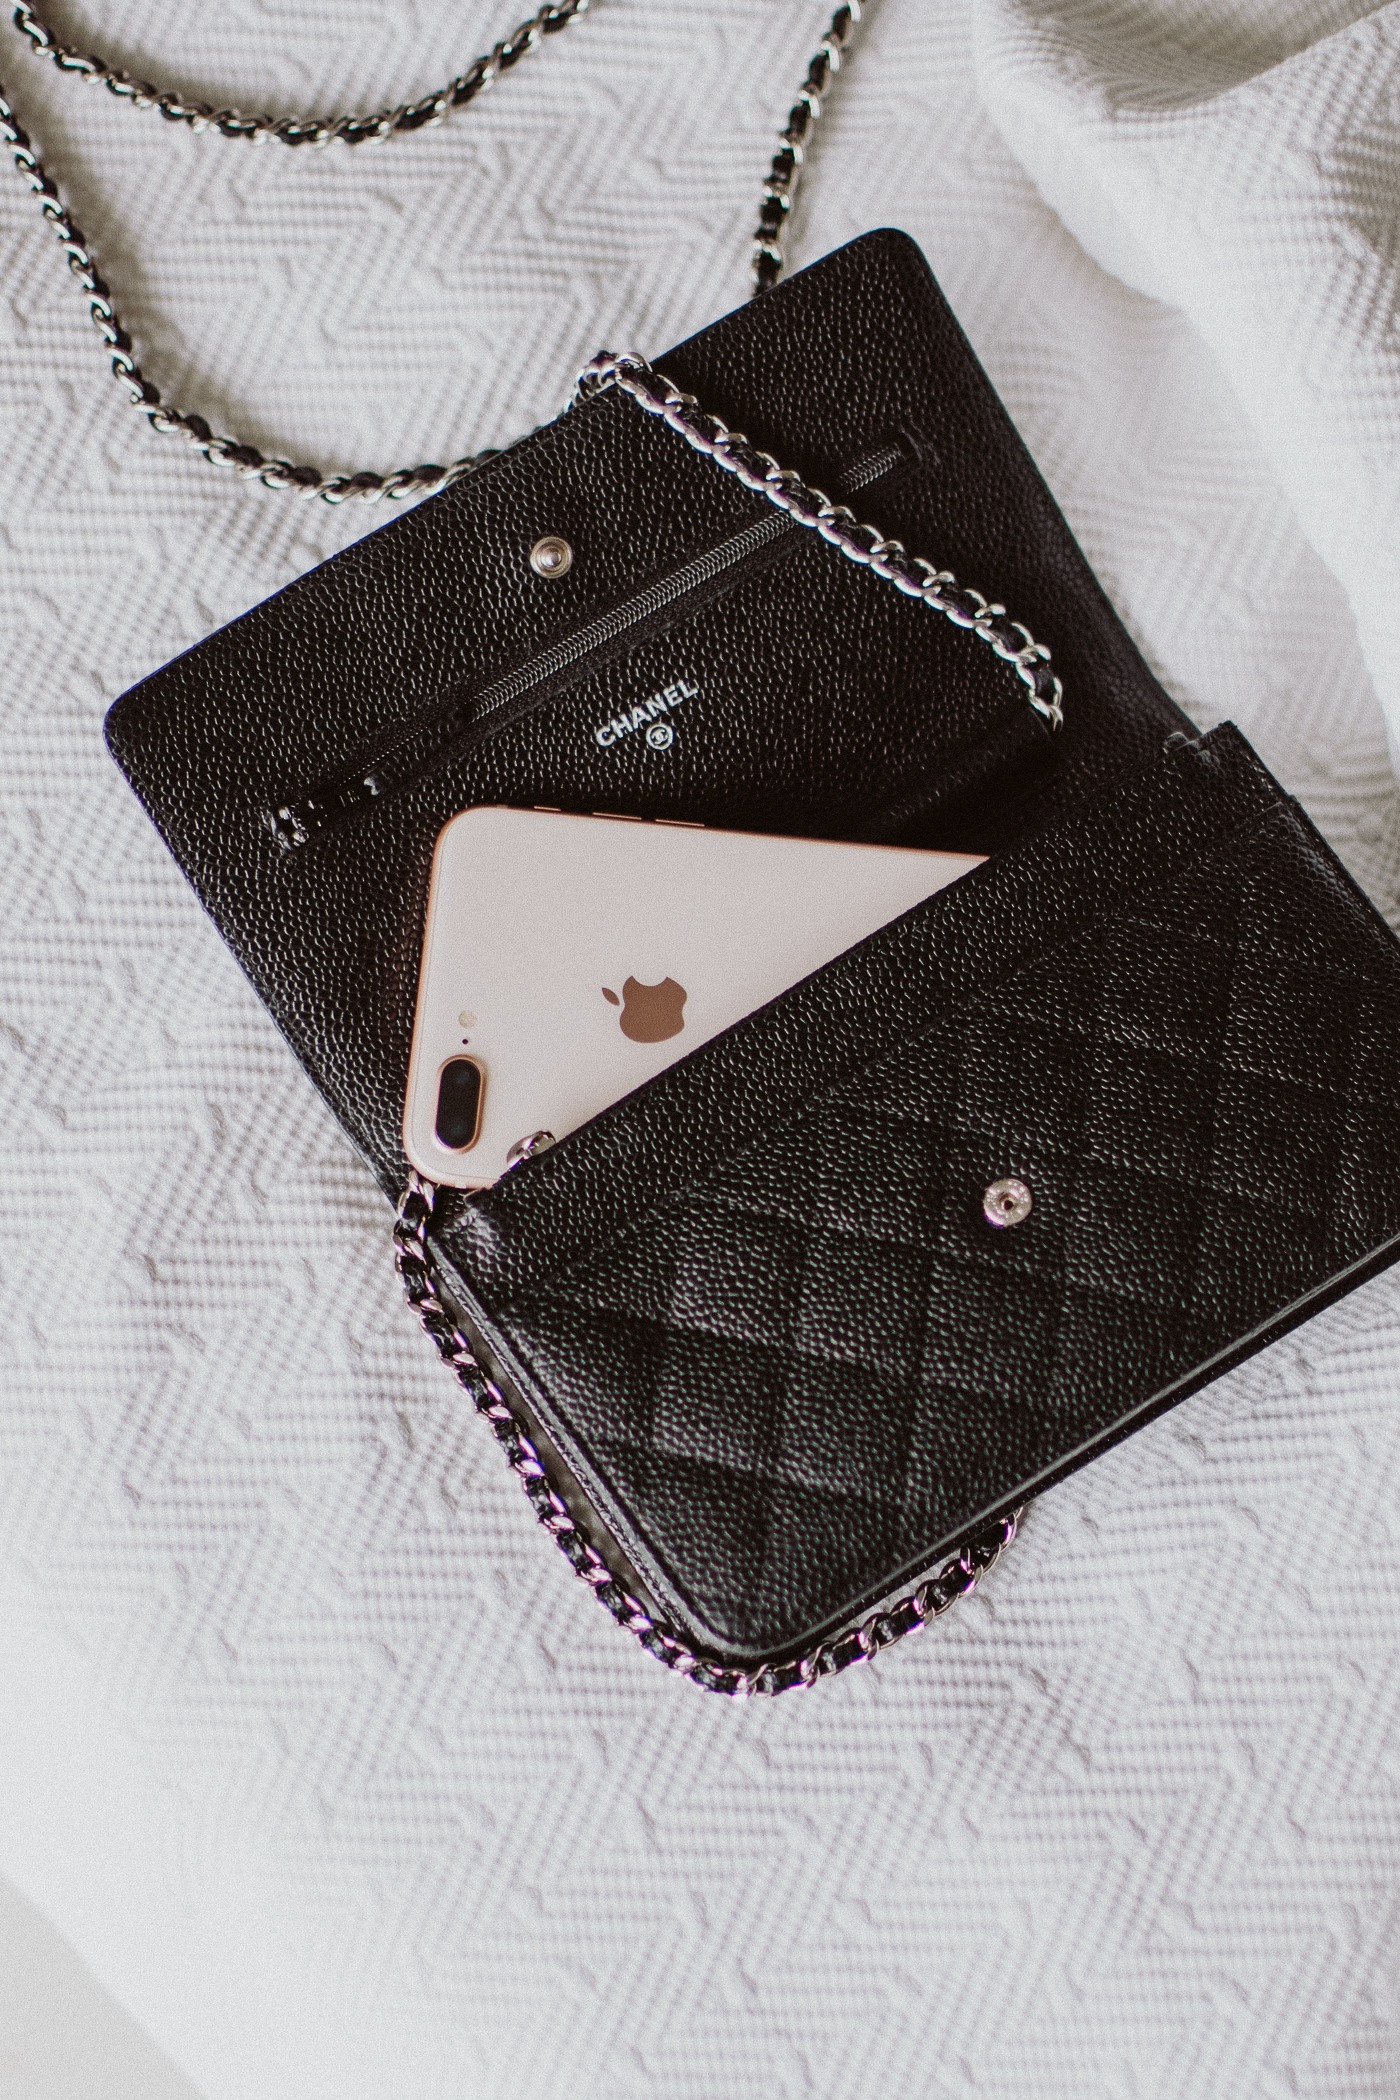 Chanel Wallet on Chain Review: What's in my bag   Bikinis & Passports